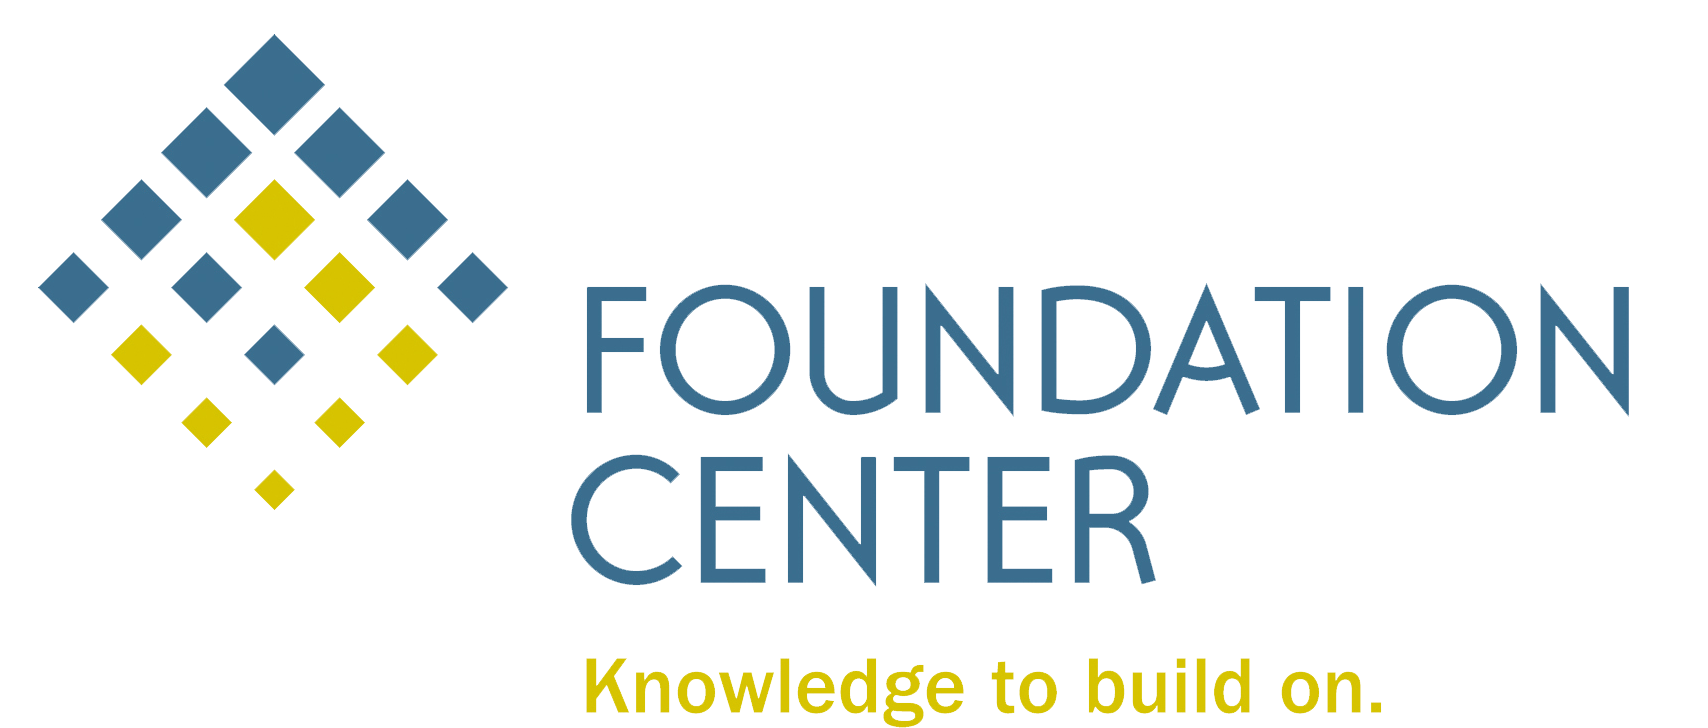 foundation center pro bono week